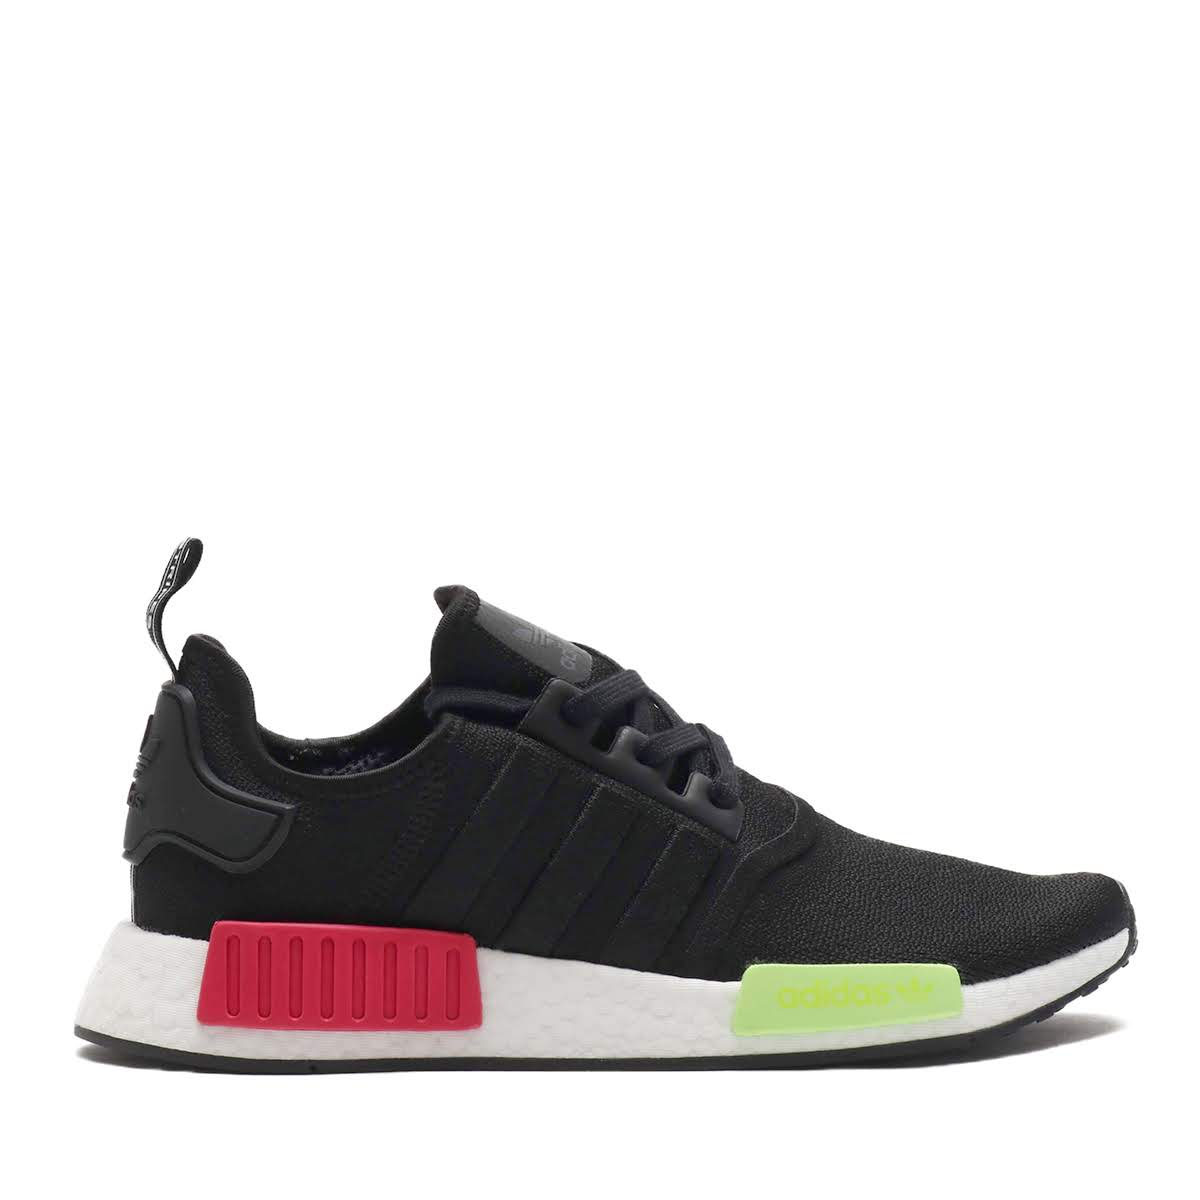 sneakers for cheap 37faa 9d0b6 adidas NMD_R1 (CORE BLACK/CORE BLACK/ENERGY PINK) (Adidas N M D _R1)